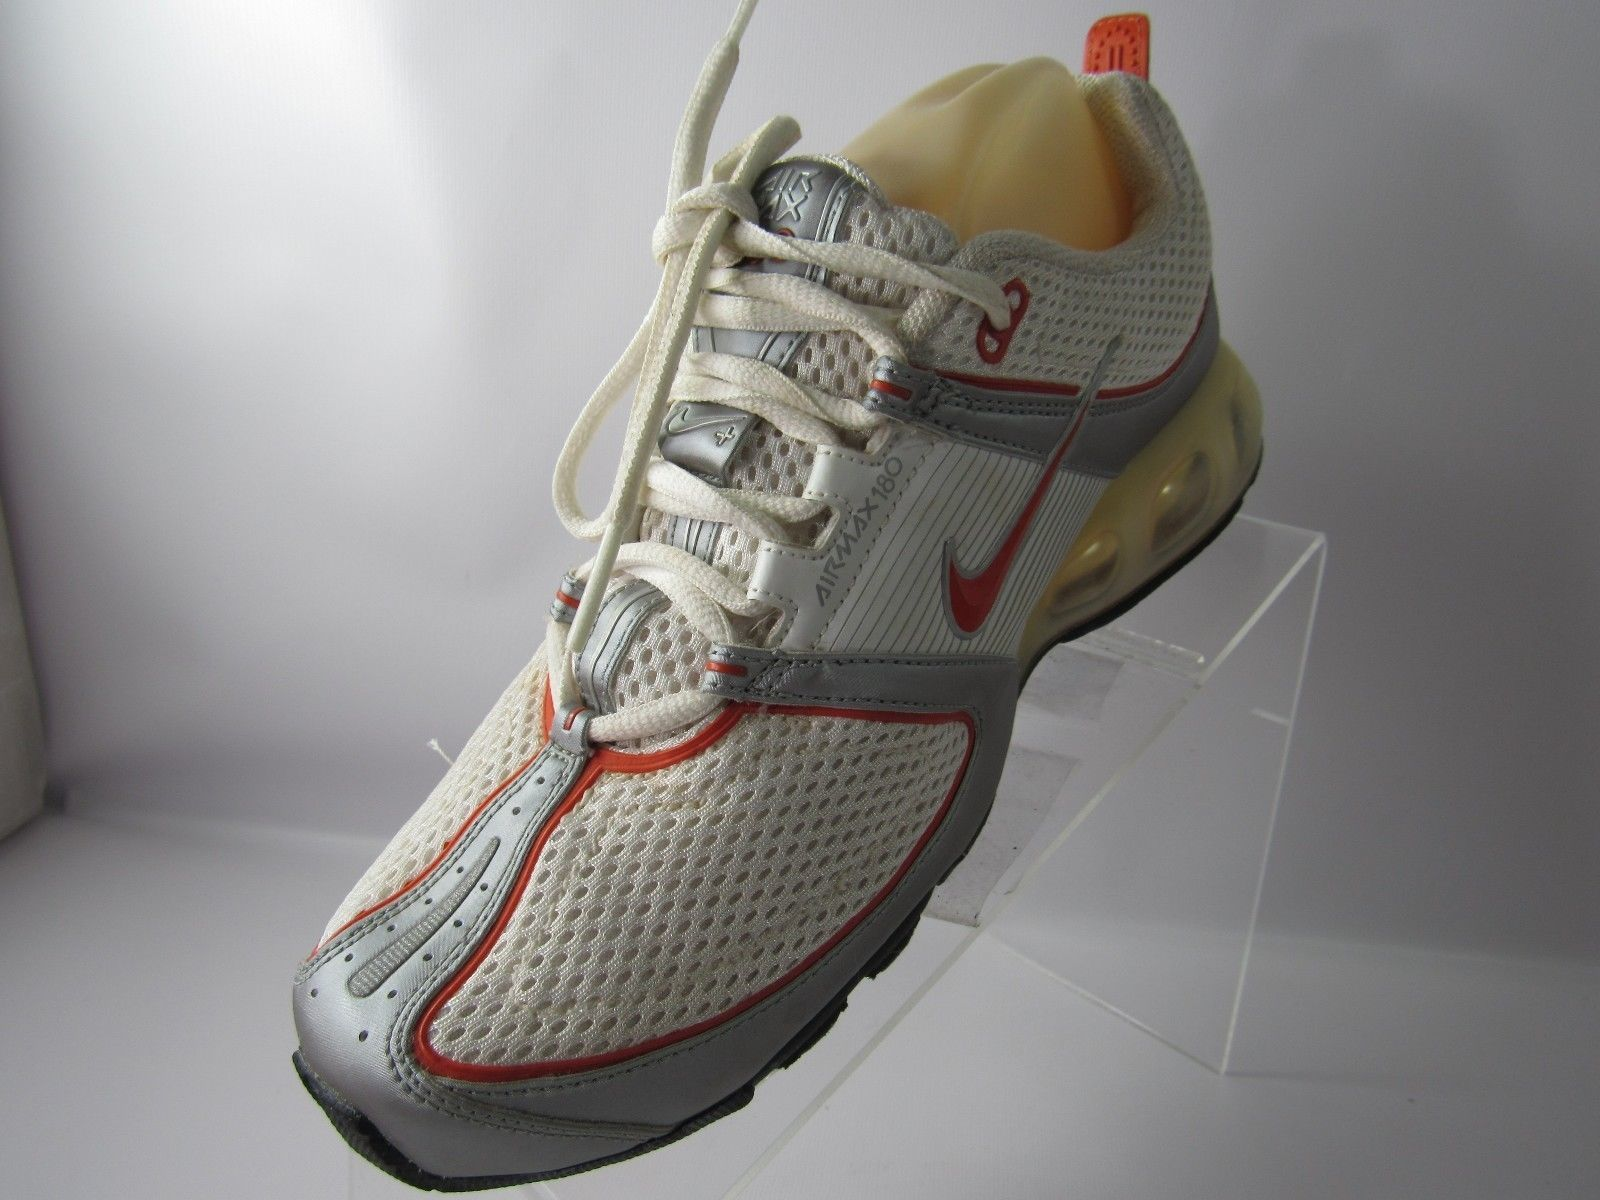 8a155235df1 ... NIKE AIR MAX 180 314017-181 Sz 8 M Orange White LACE UP RUNNING Shoes  ...